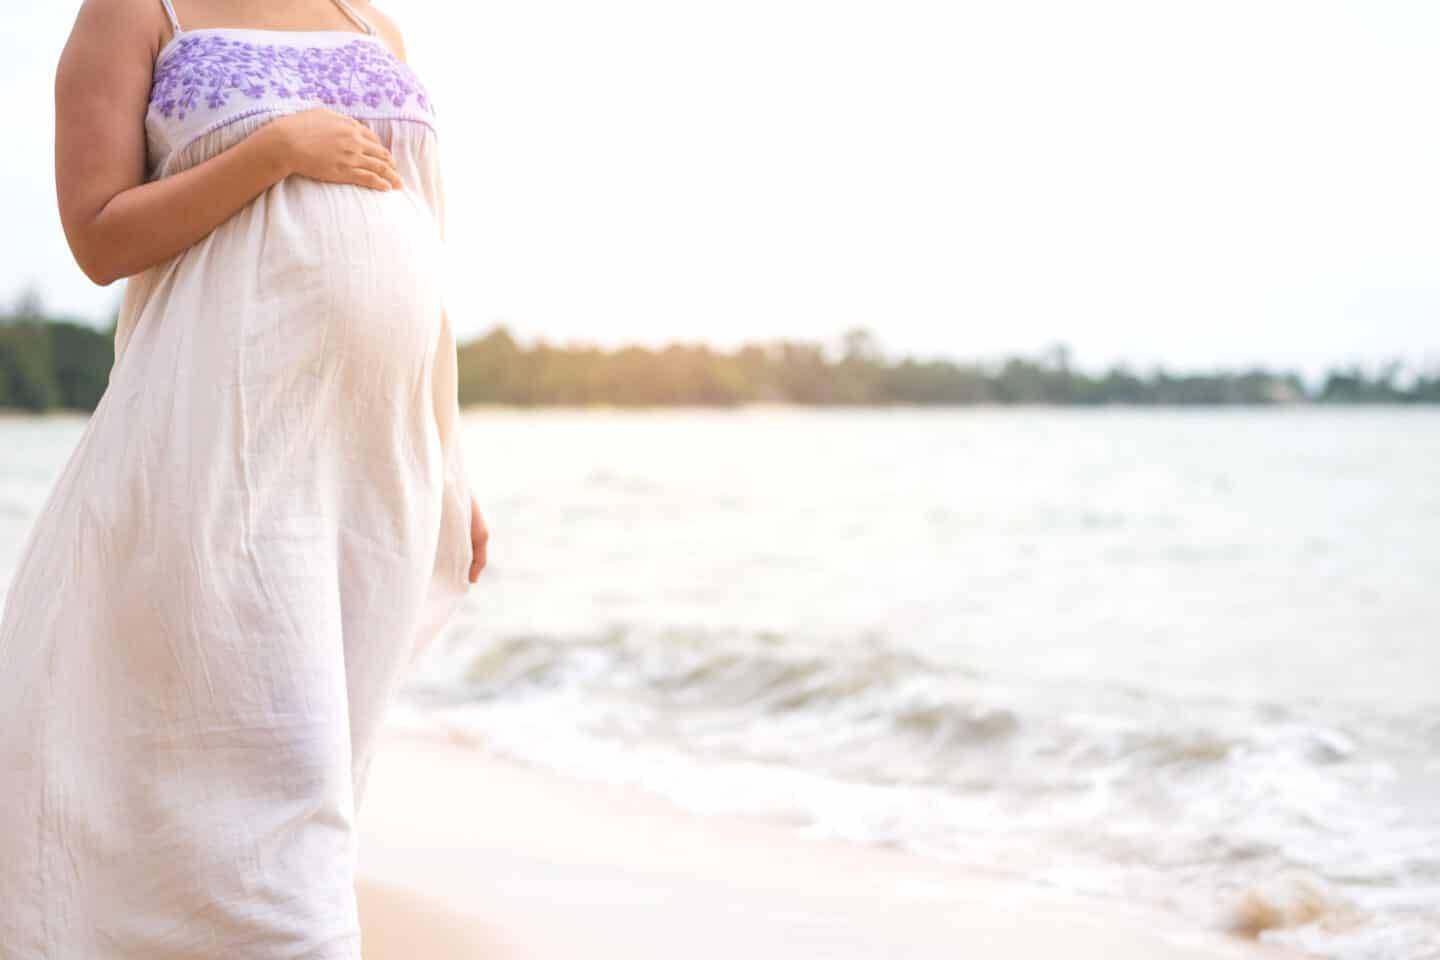 Pregnant woman standing on beach hand touching on her belly.